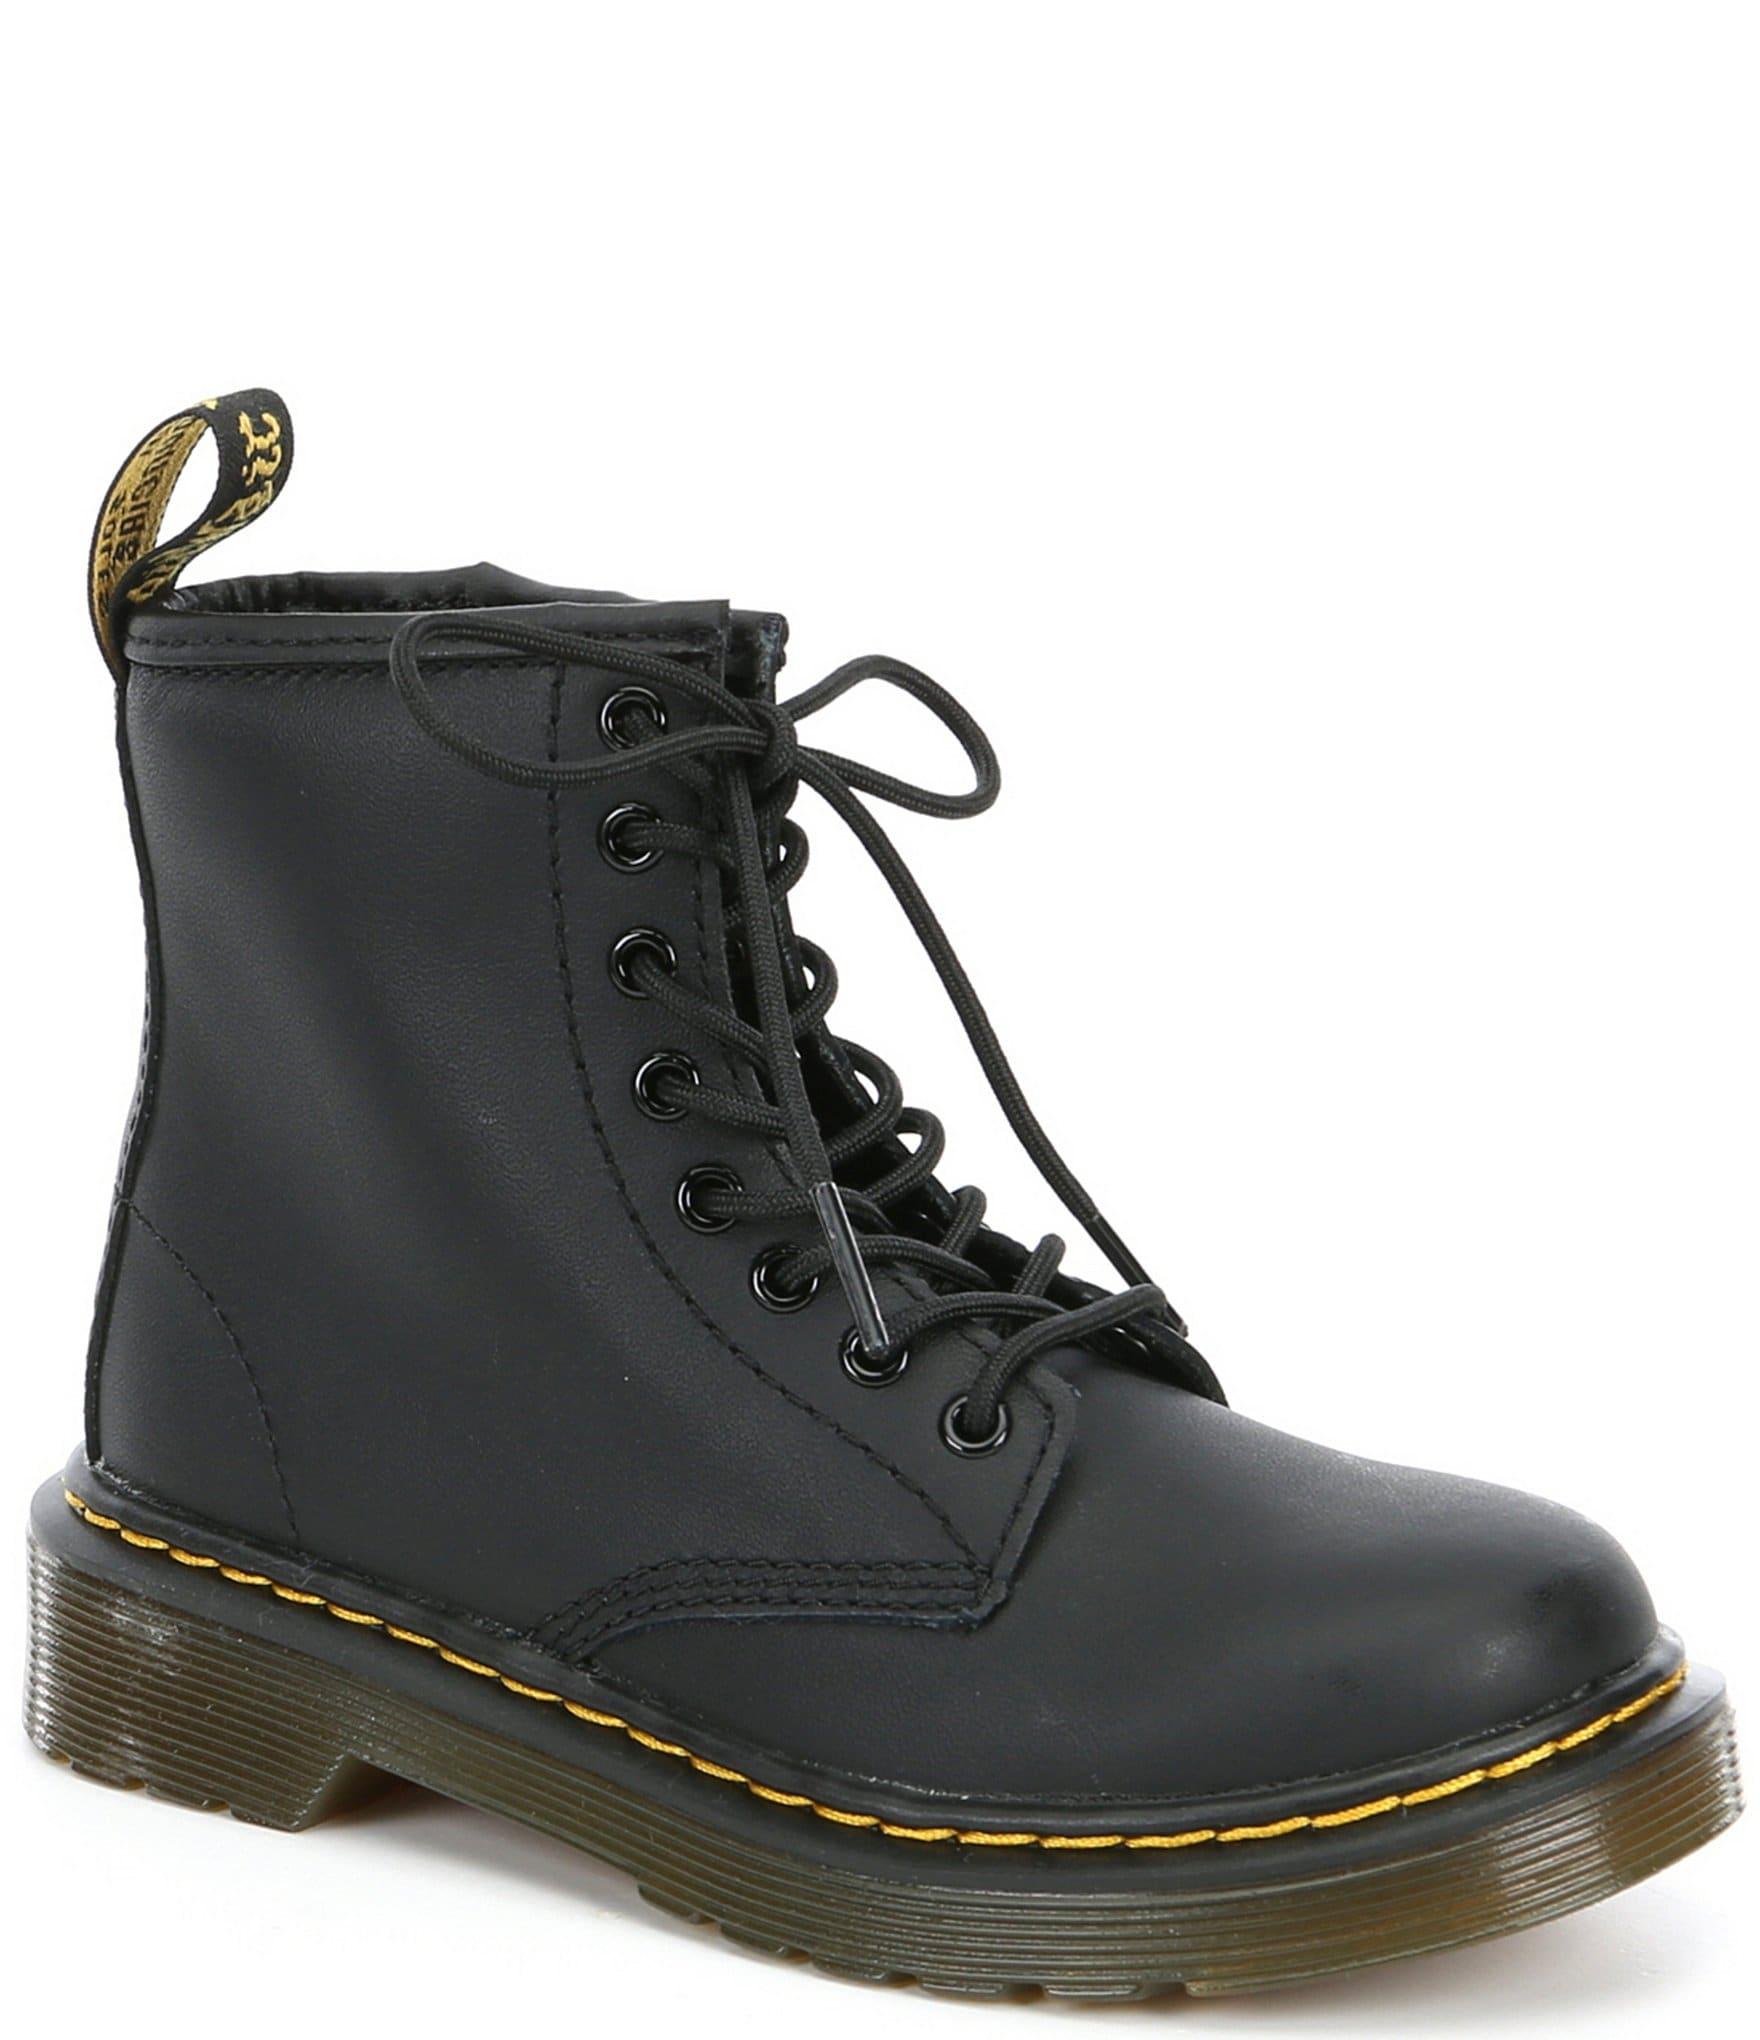 New Shoe Alert | Dr Martens 1460 Review + On Feet YouTube